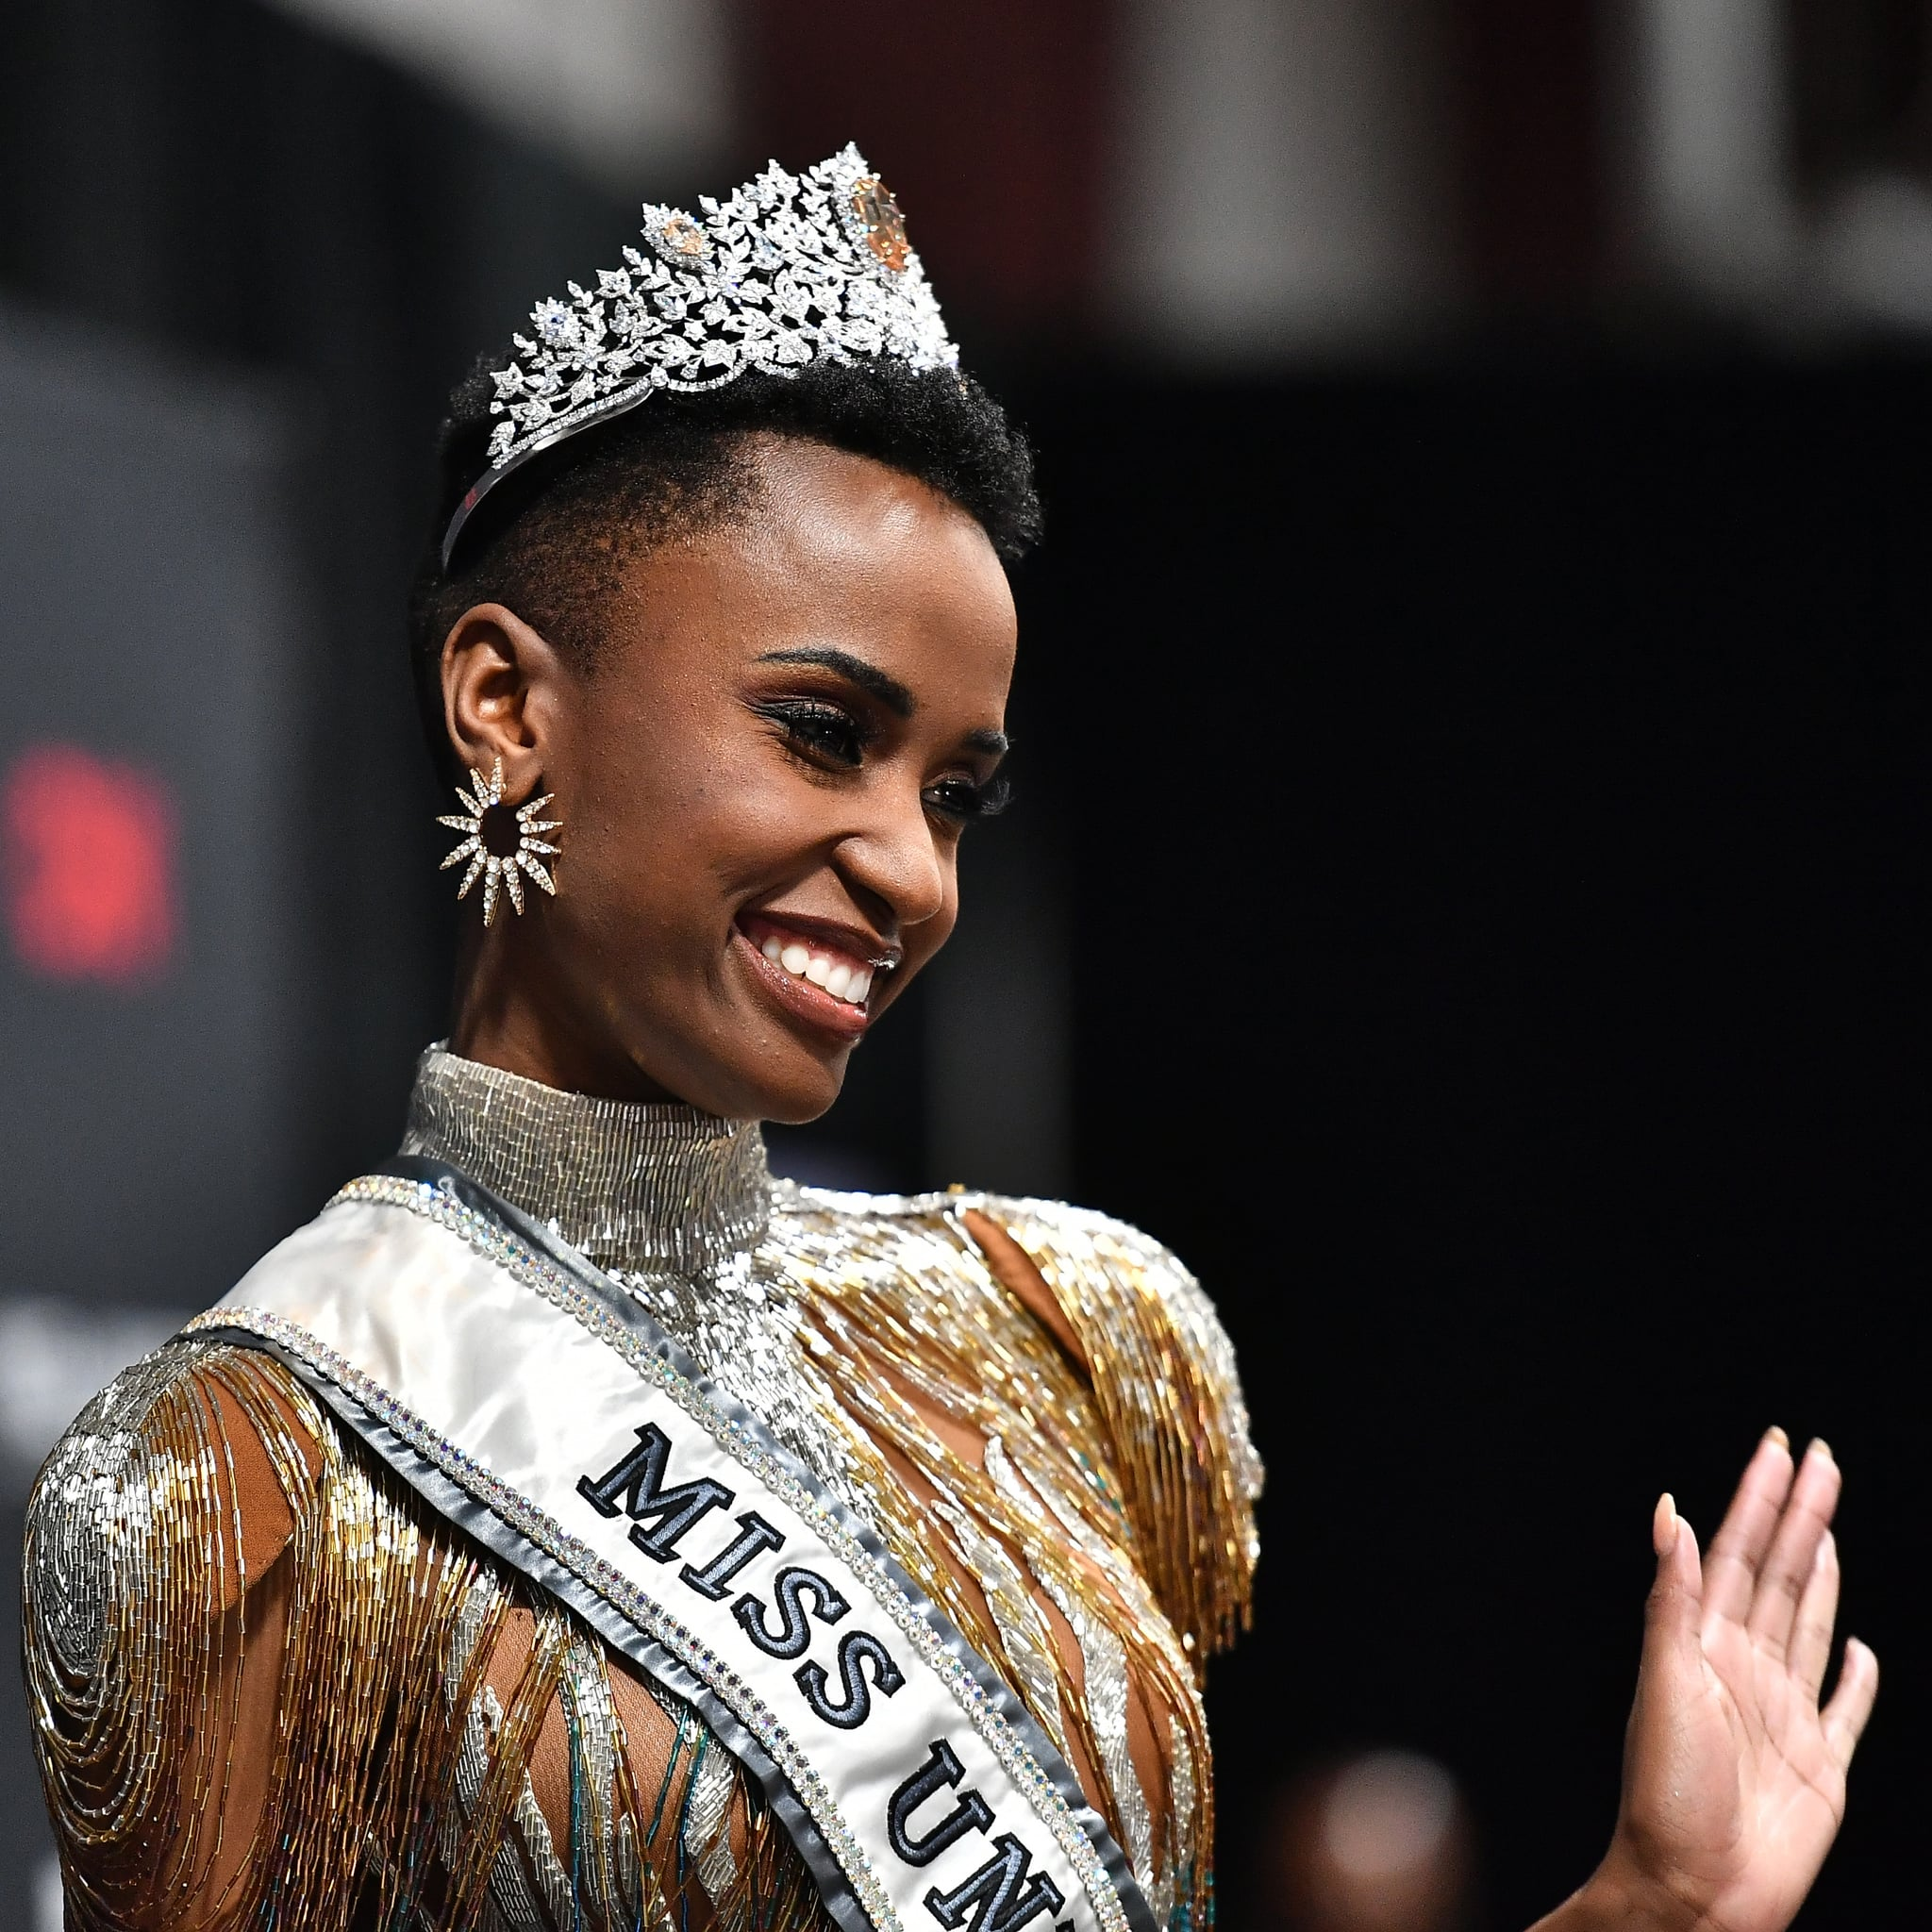 From Zozibini Tunzi to Shudufhadzo Musida: How the Miss South Africa Pageant Is Redefining Beauty